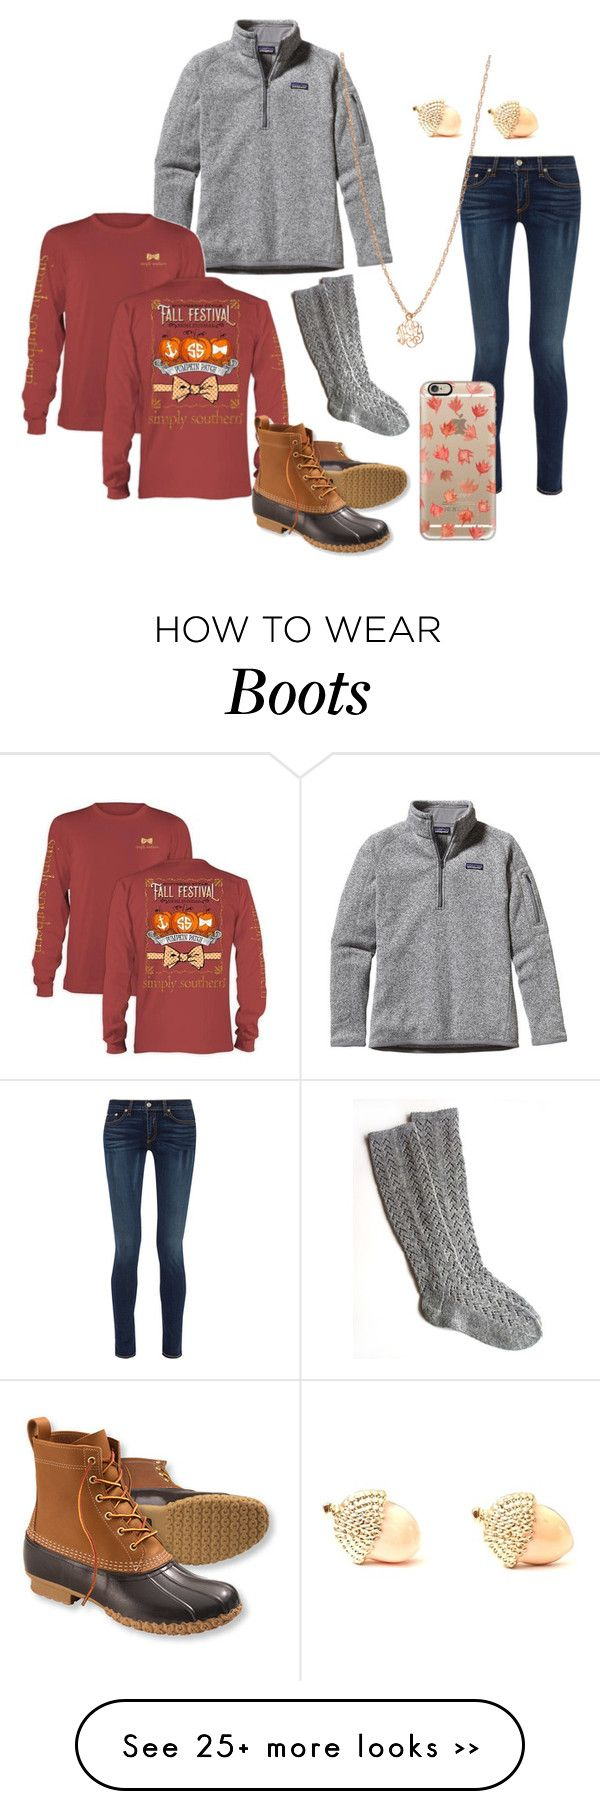 """A is for Autumn and Acorns and B is for Bean boots"" by lindsaythebrave on Polyvore featuring rag & bone, Casetify, Patagonia, L.L.Bean, Ginette NY and Alphabetofprep"